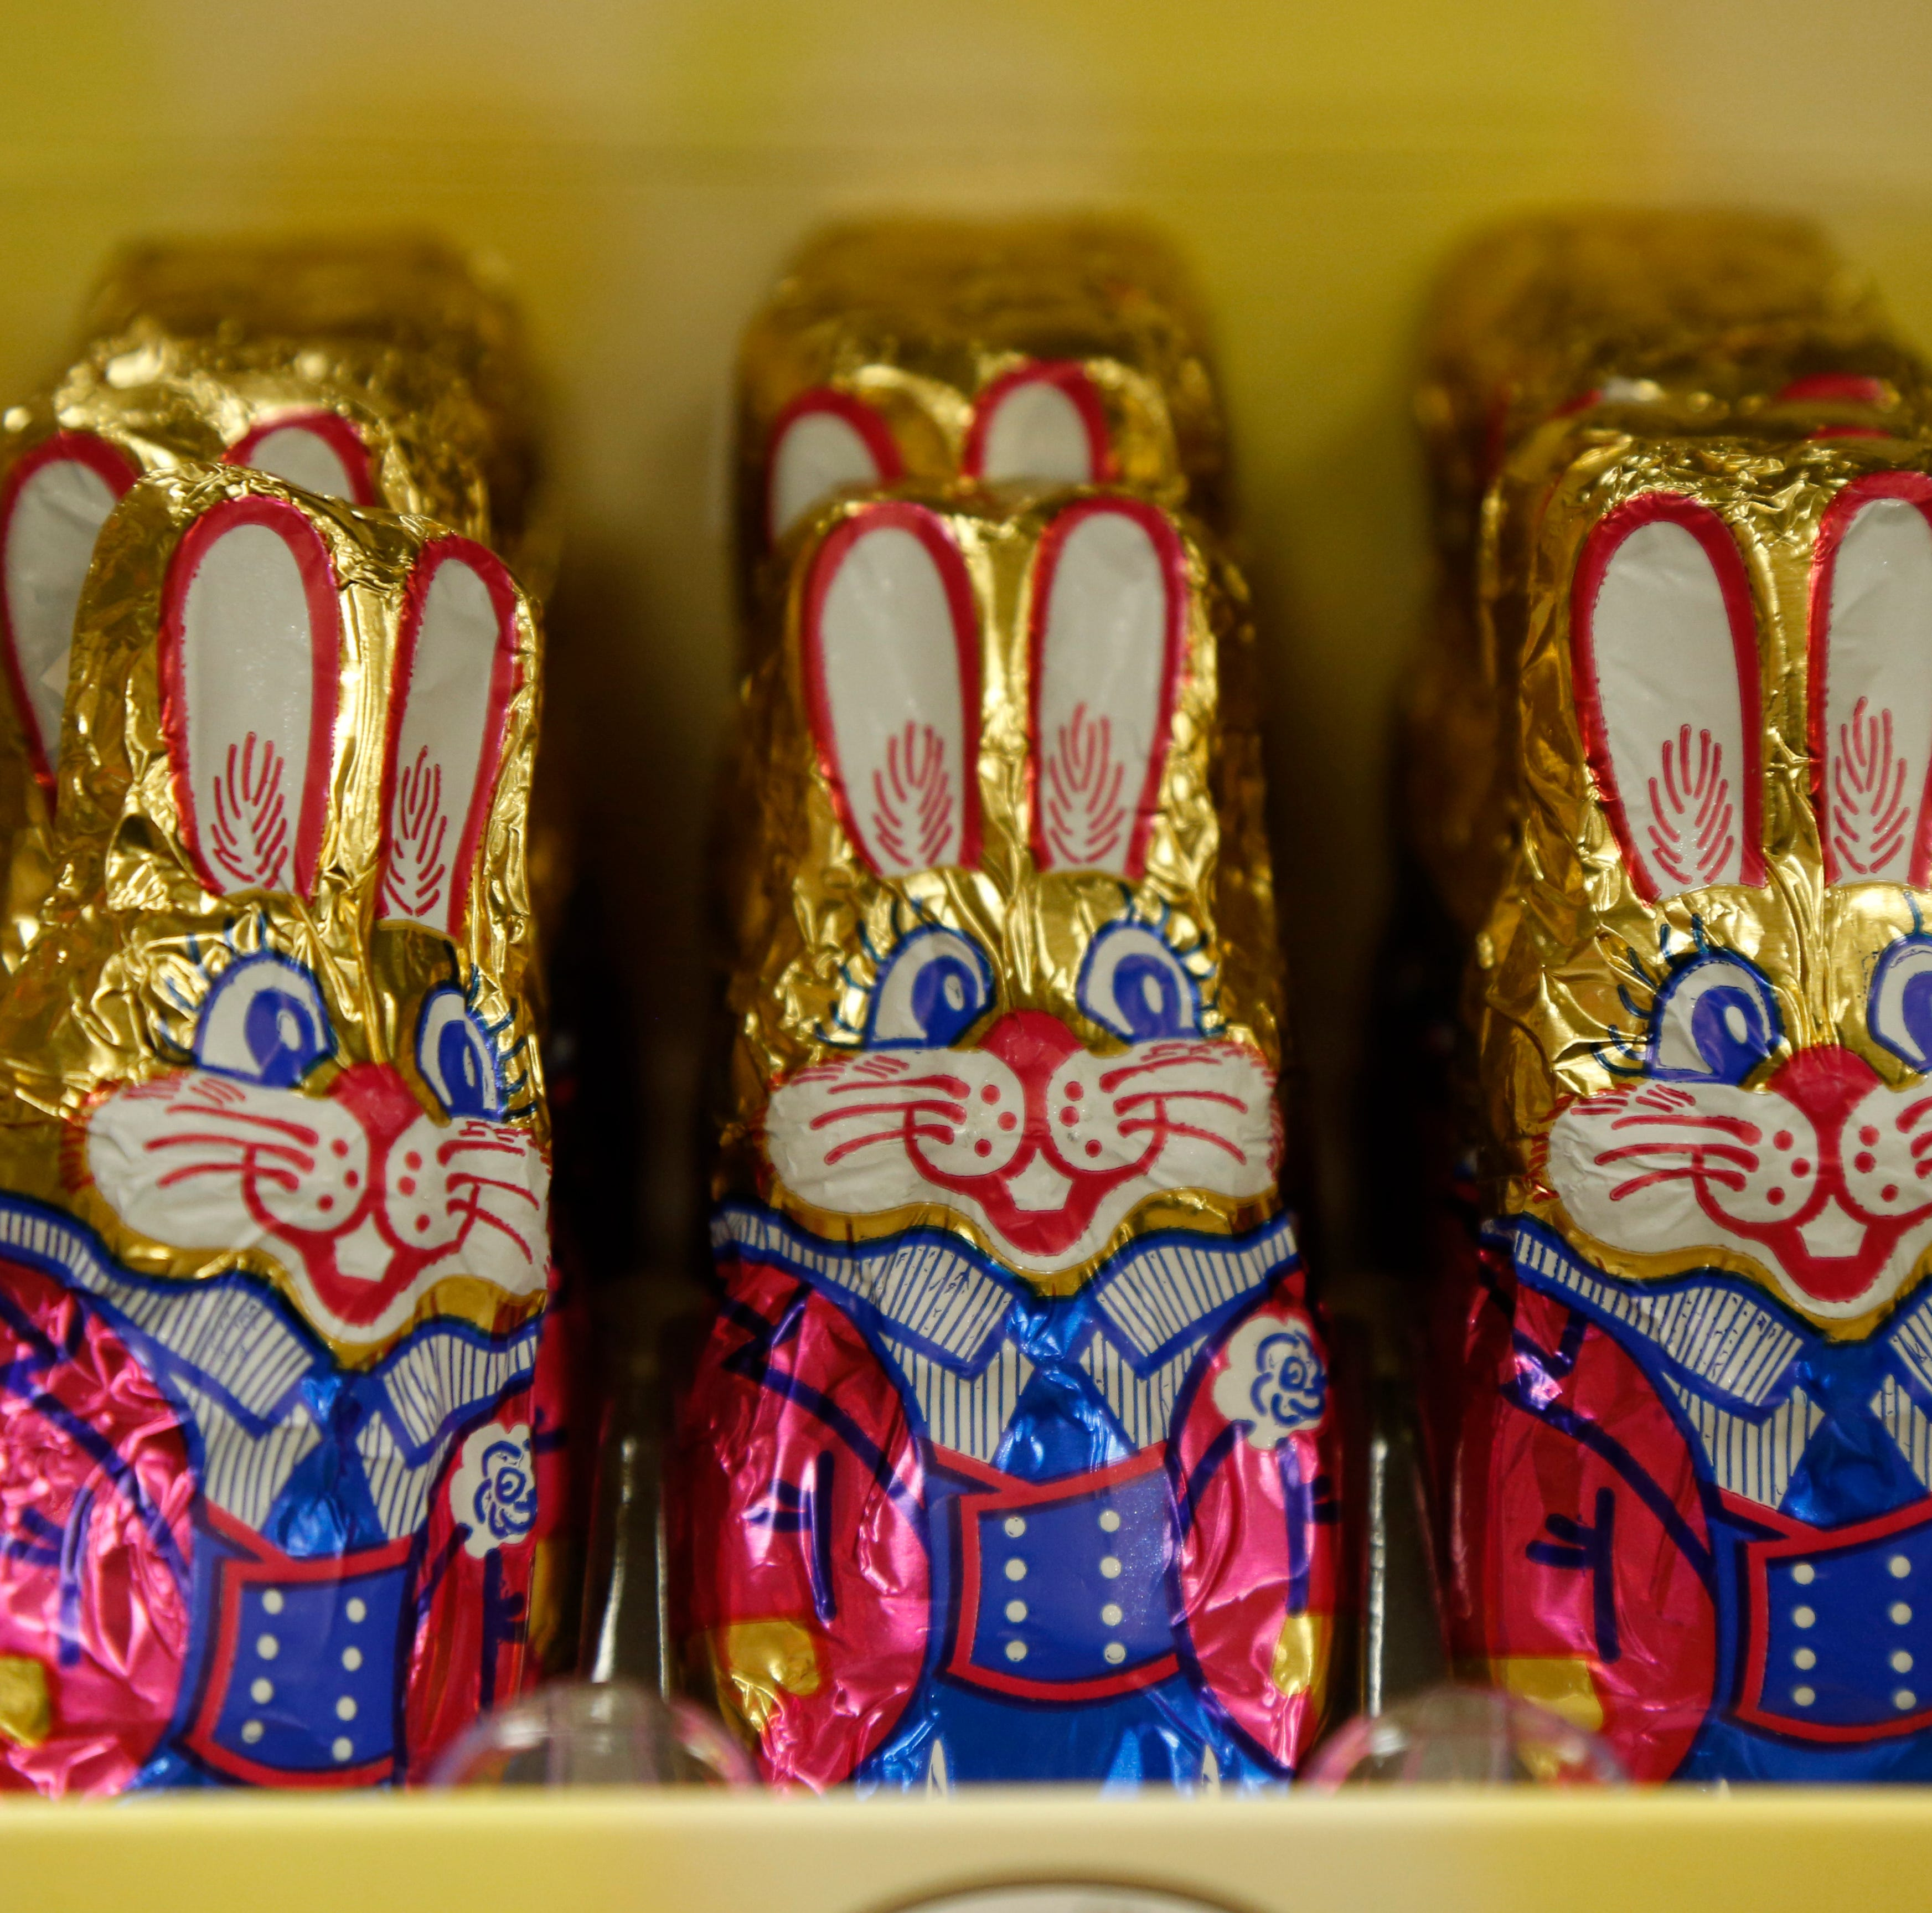 Last minute Easter treats: Where to find Peeps, chocolate bunnies, more